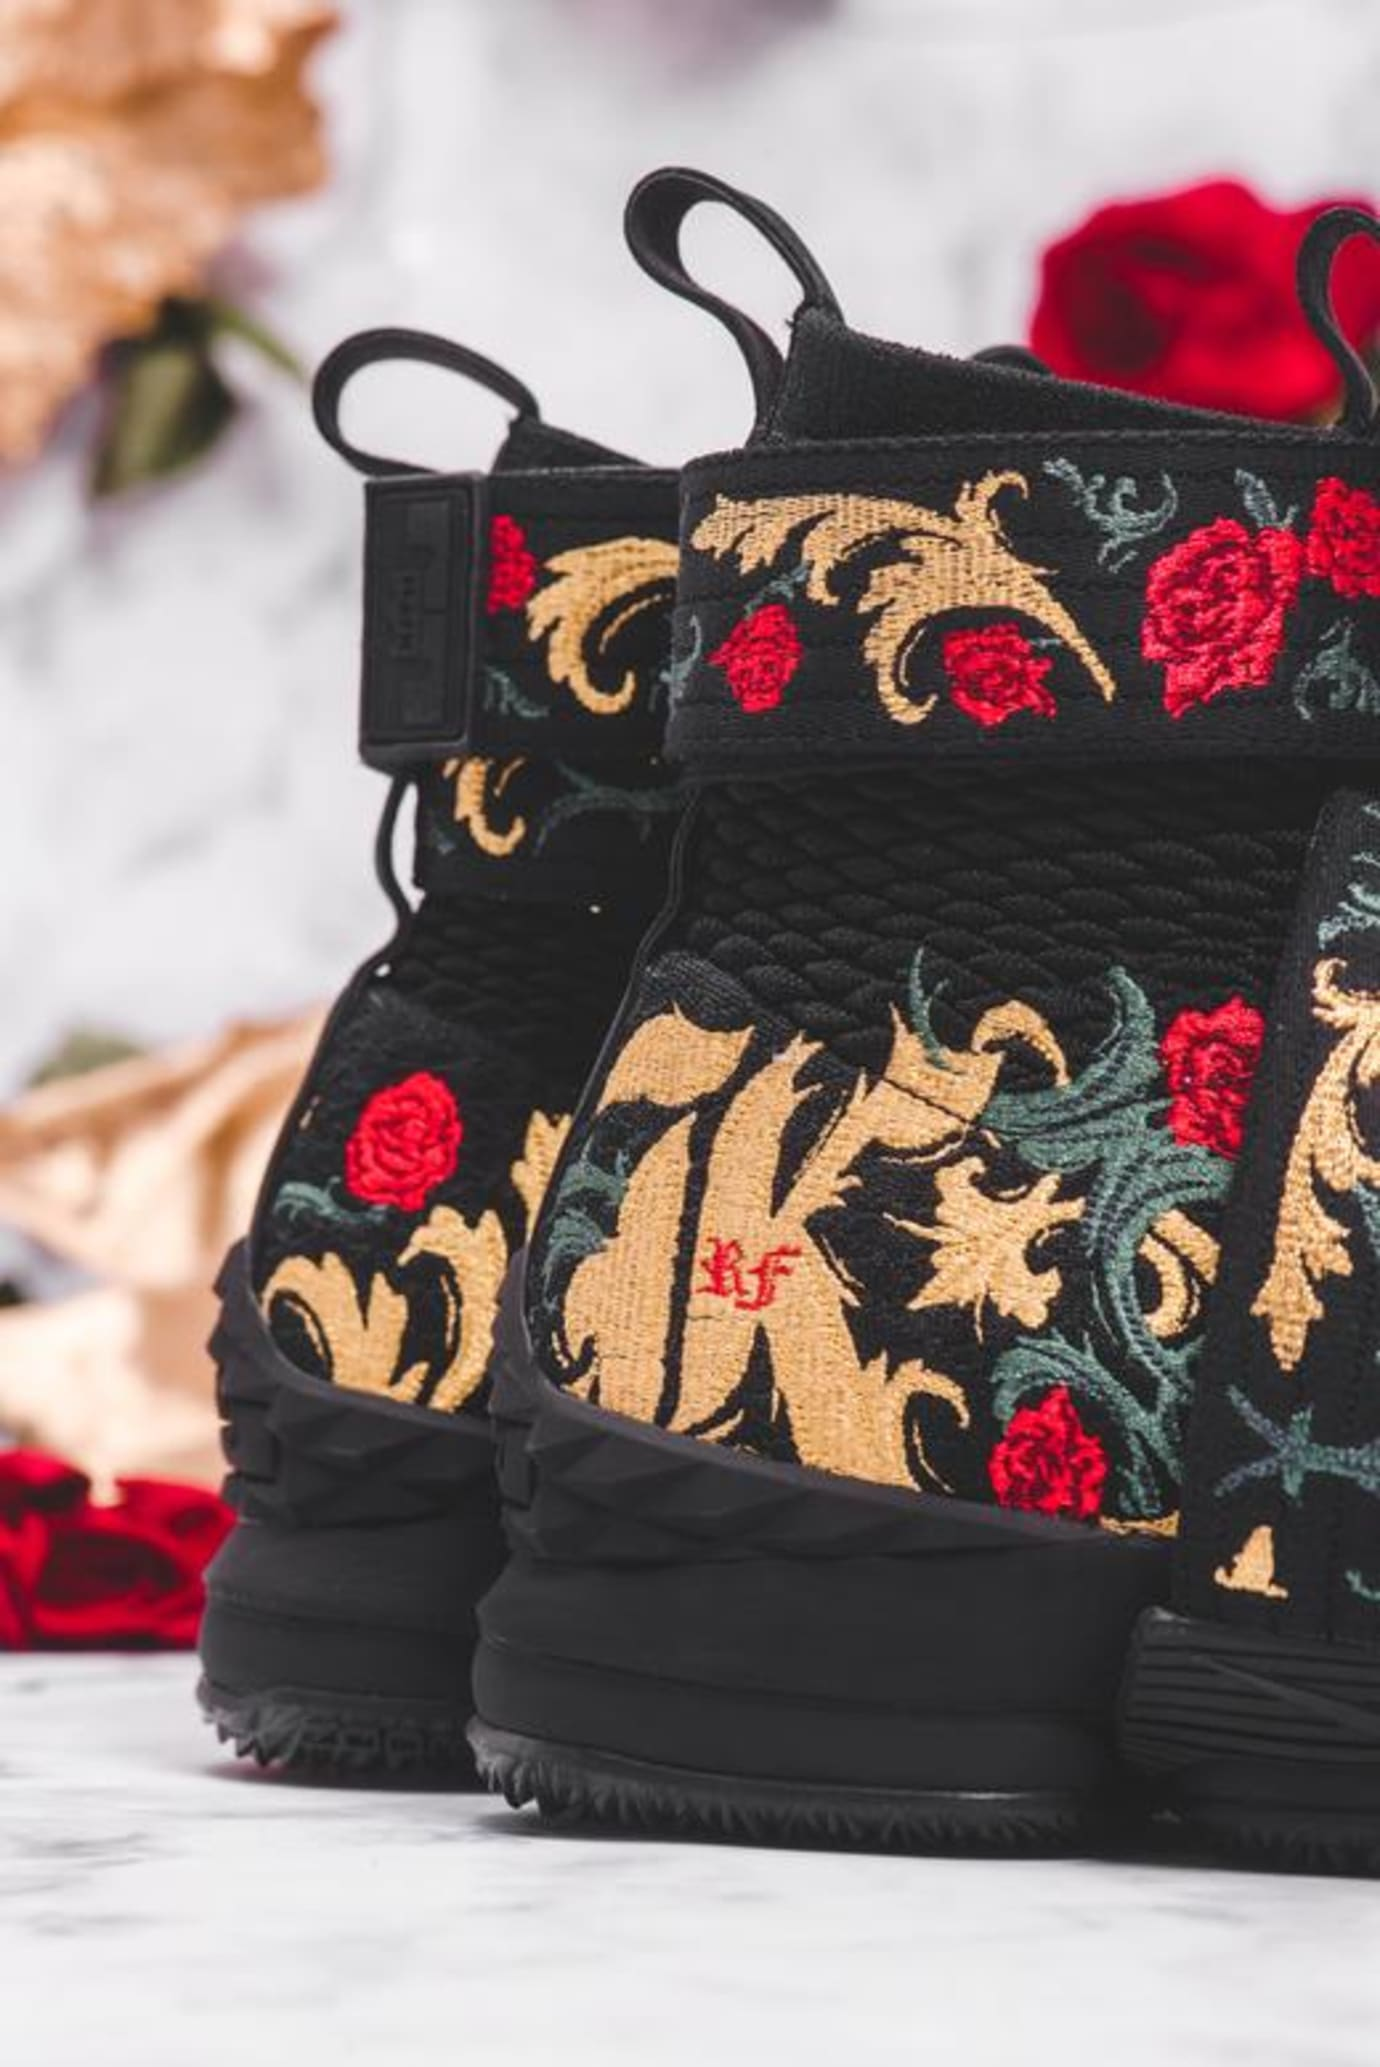 nike-kith-long-live-the-king-collection-part-2